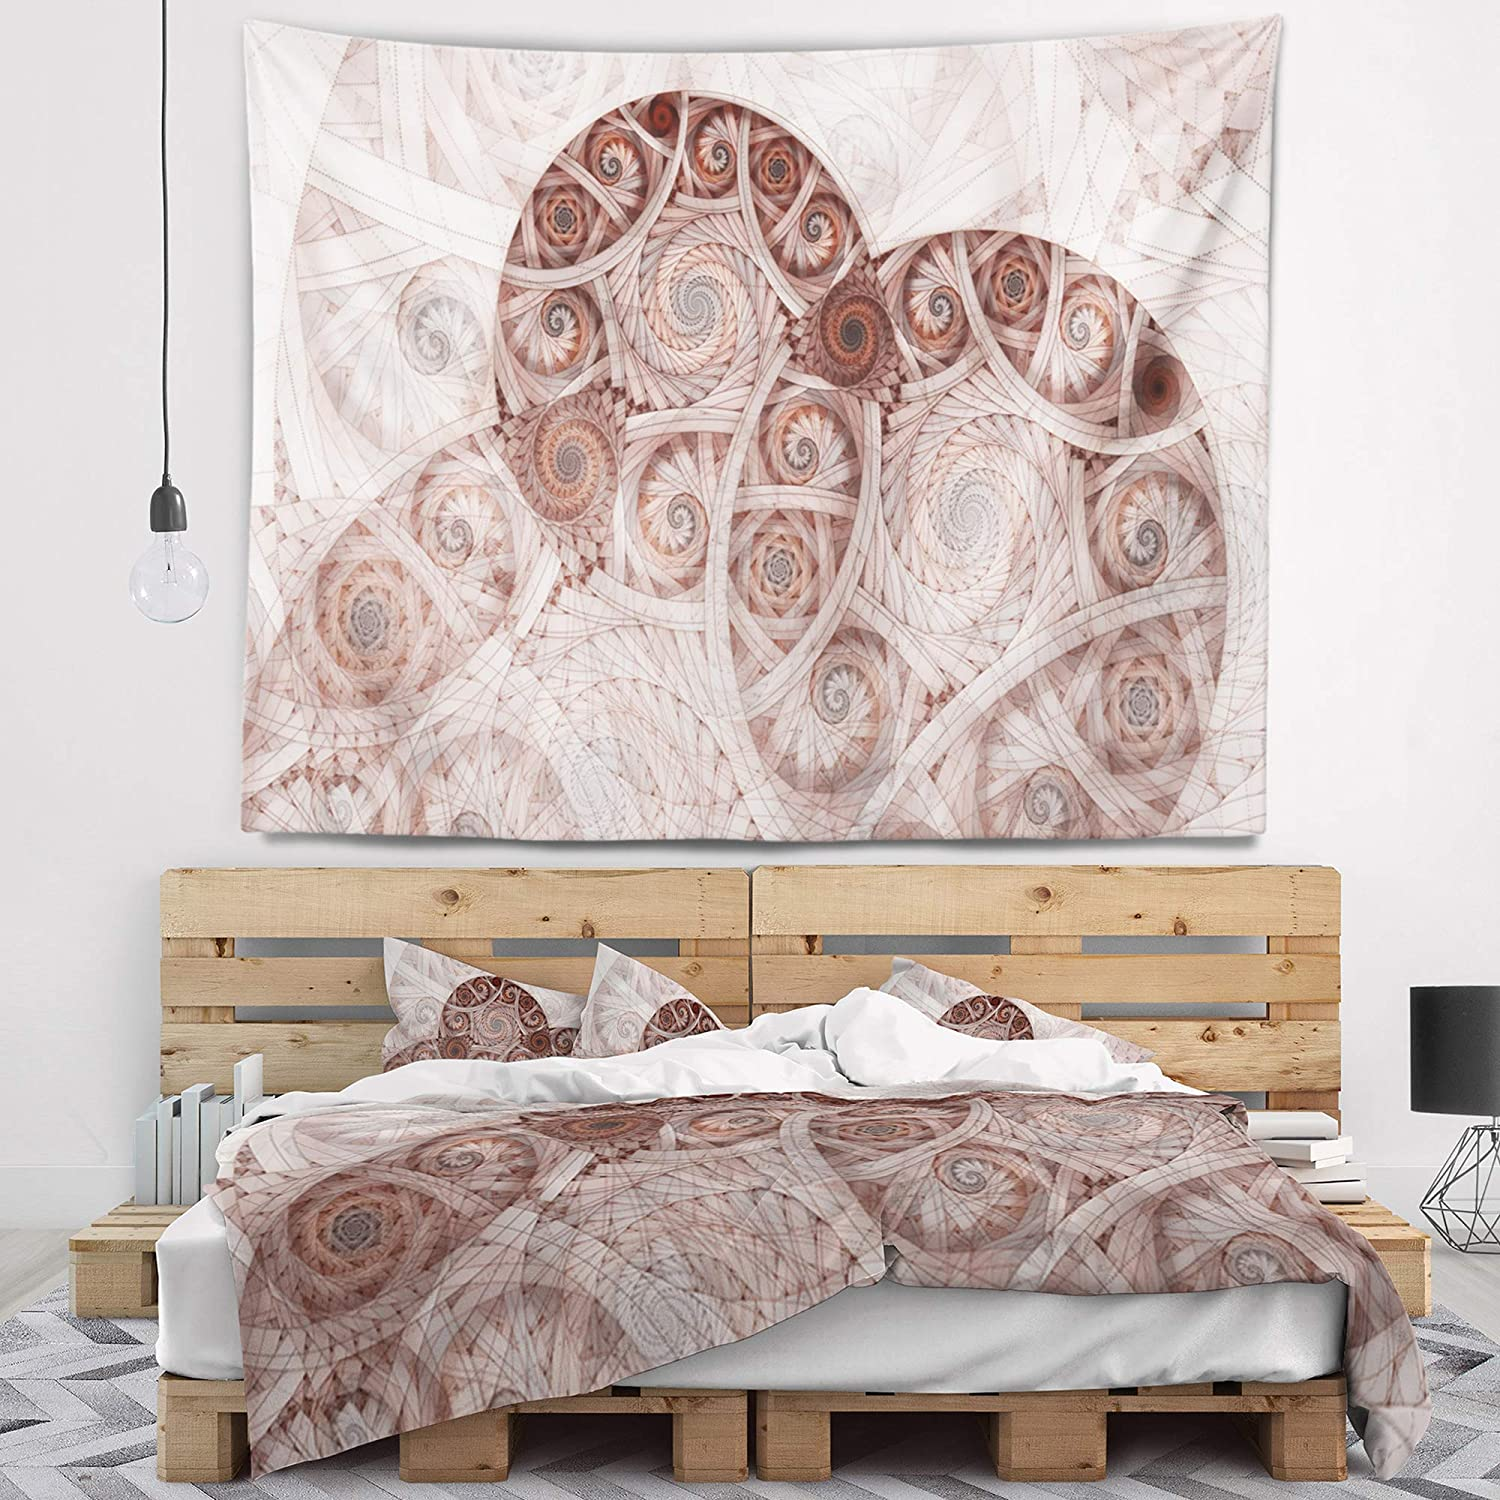 x 32 in 39 in Designart TAP11910-39-32  Symmetrical Fractal Flower Spiral Floral Blanket D/écor Art for Home and Office Wall Tapestry Medium in